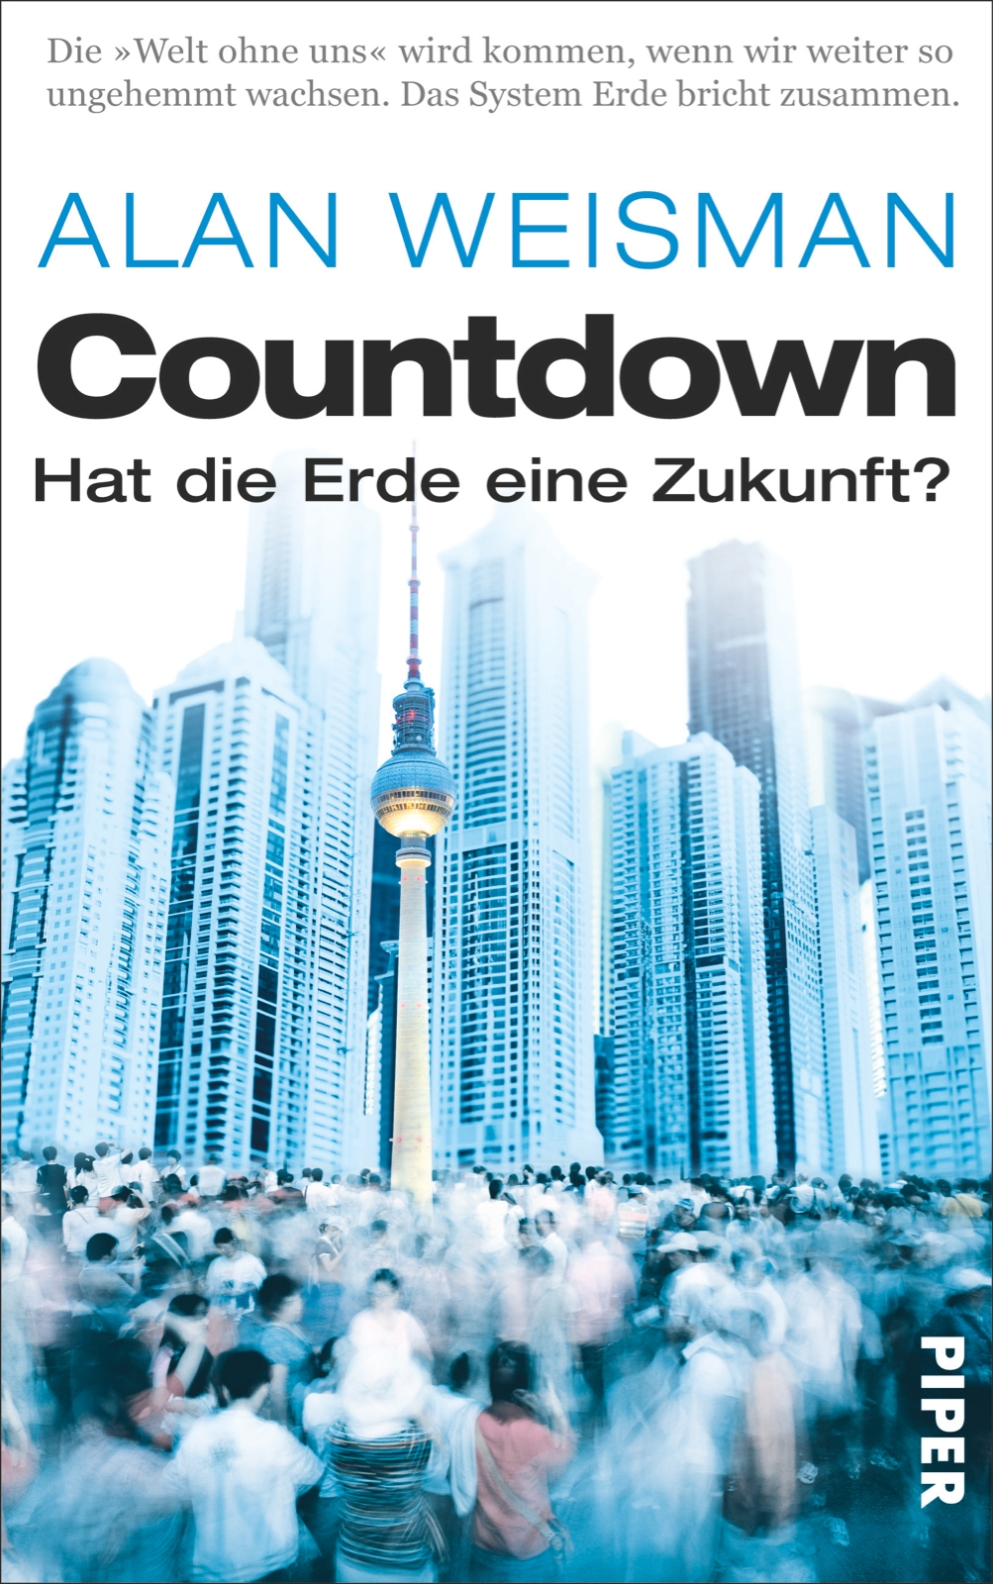 Alan Weismann: Countdown. Hat die Erde eine Zukunft?